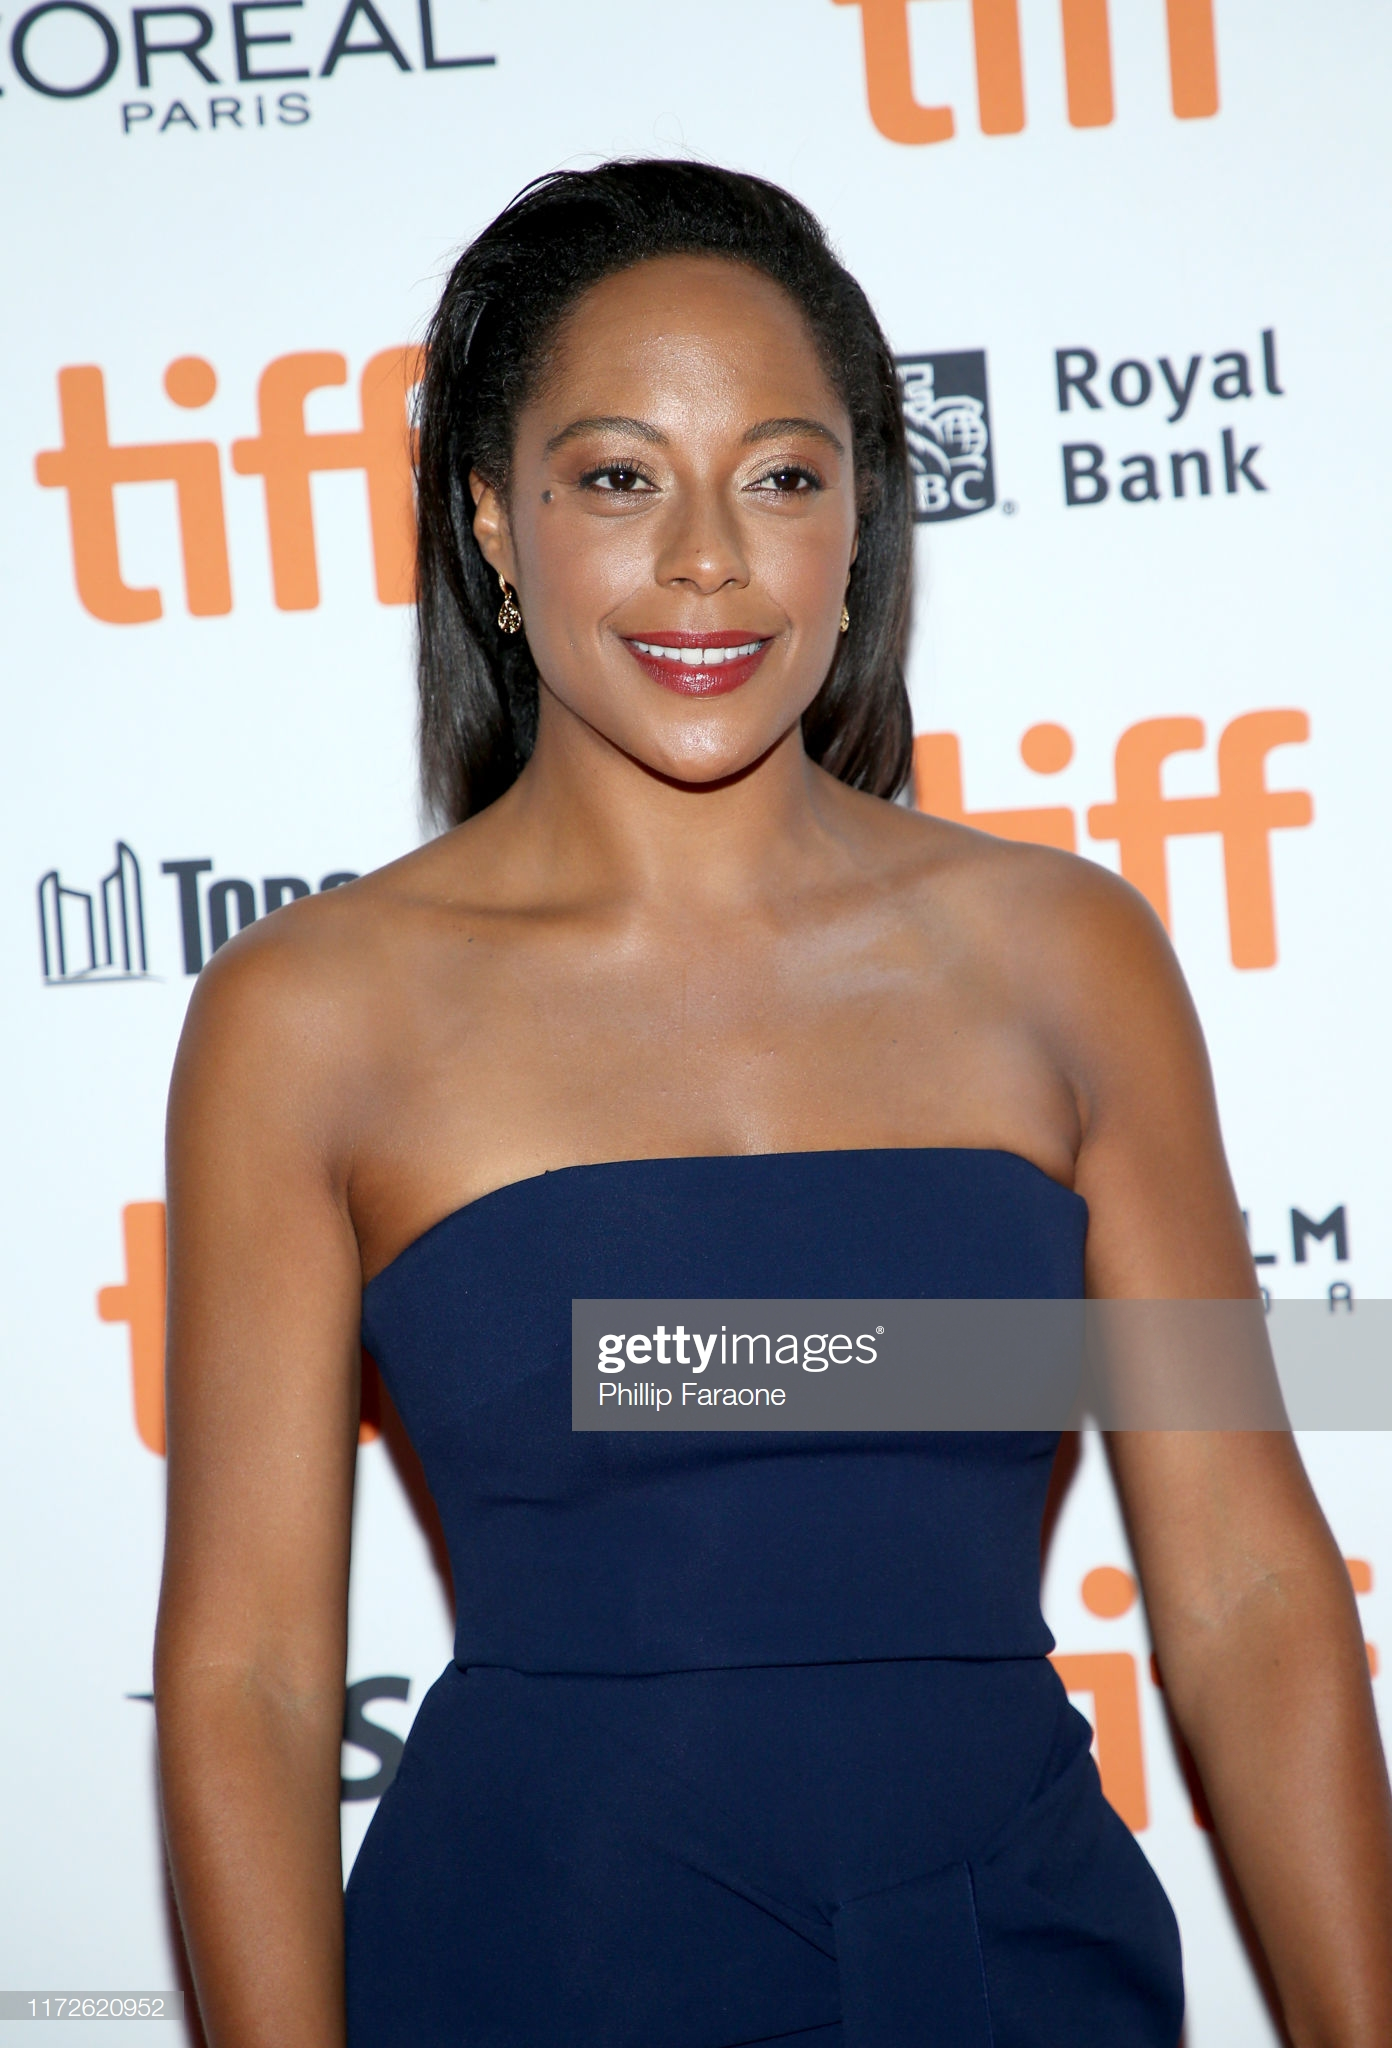 """TORONTO, ONTARIO - SEPTEMBER 05: Rosalind Eleazar attends """"The Personal History Of David Copperfield"""" premiere during the 2019 Toronto International Film Festival at Princess of Wales Theatre on September 05, 2019 in Toronto, Canada. (Photo by Phillip Faraone/Getty Images)"""